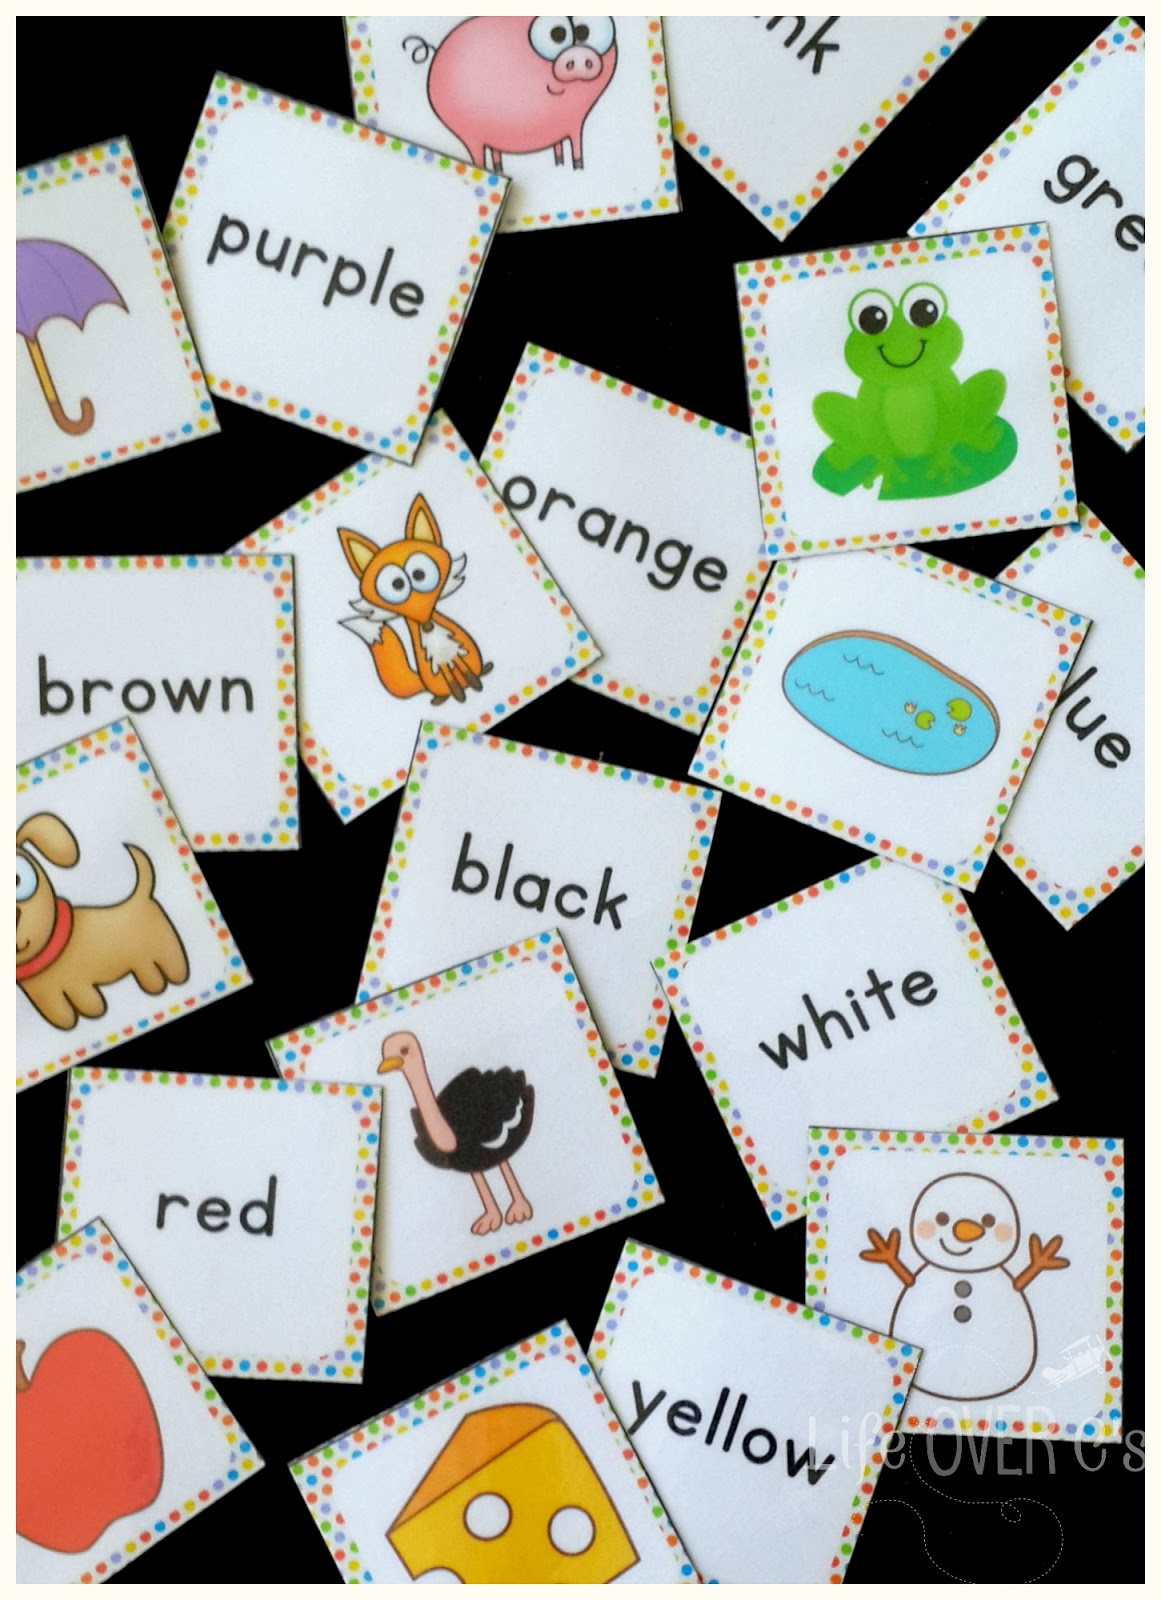 We have had so much fun talking about colors using these 4 free printable color recognition activities!